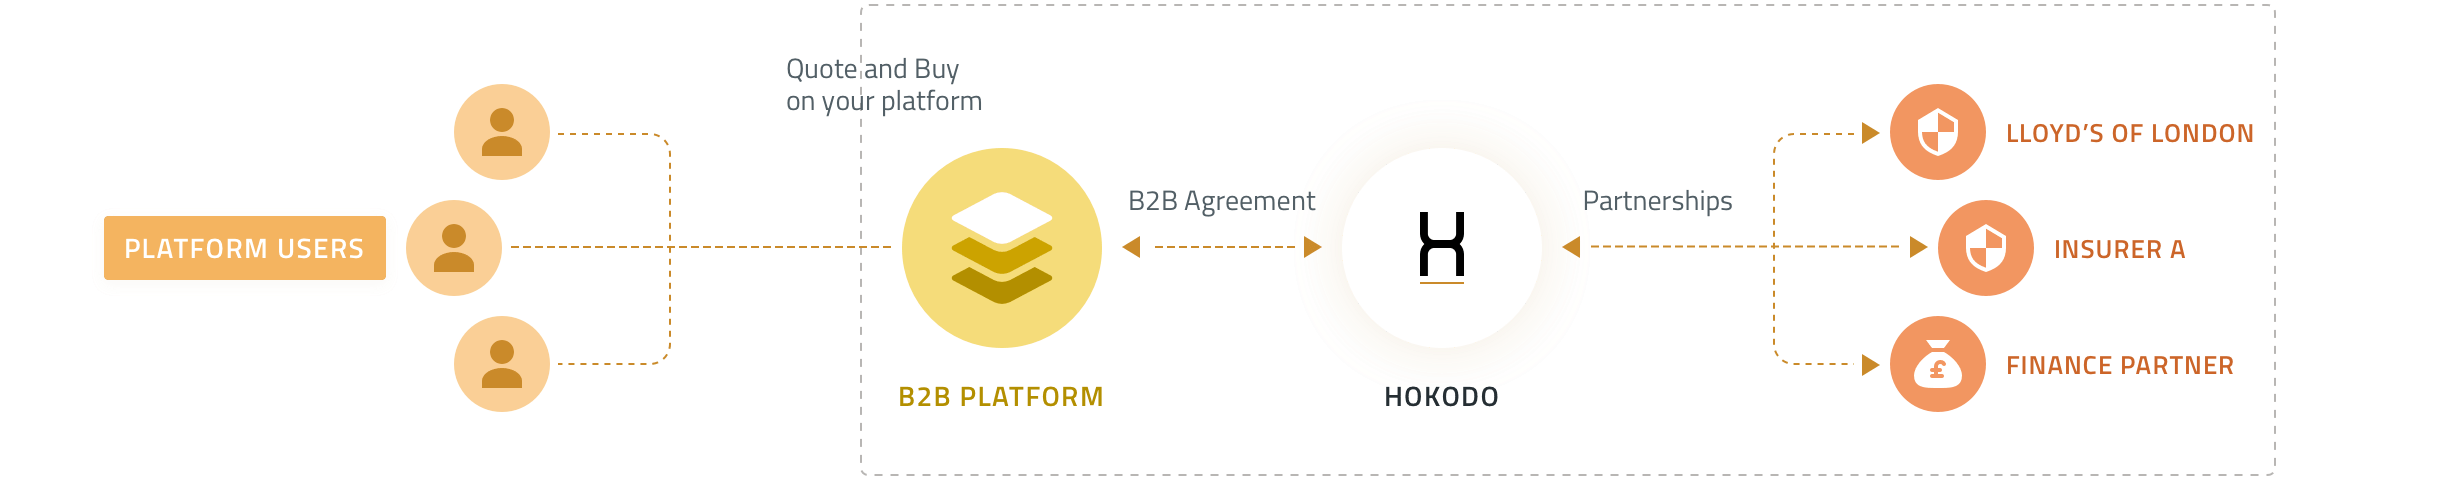 Illustration Hokodo product - Platform Users